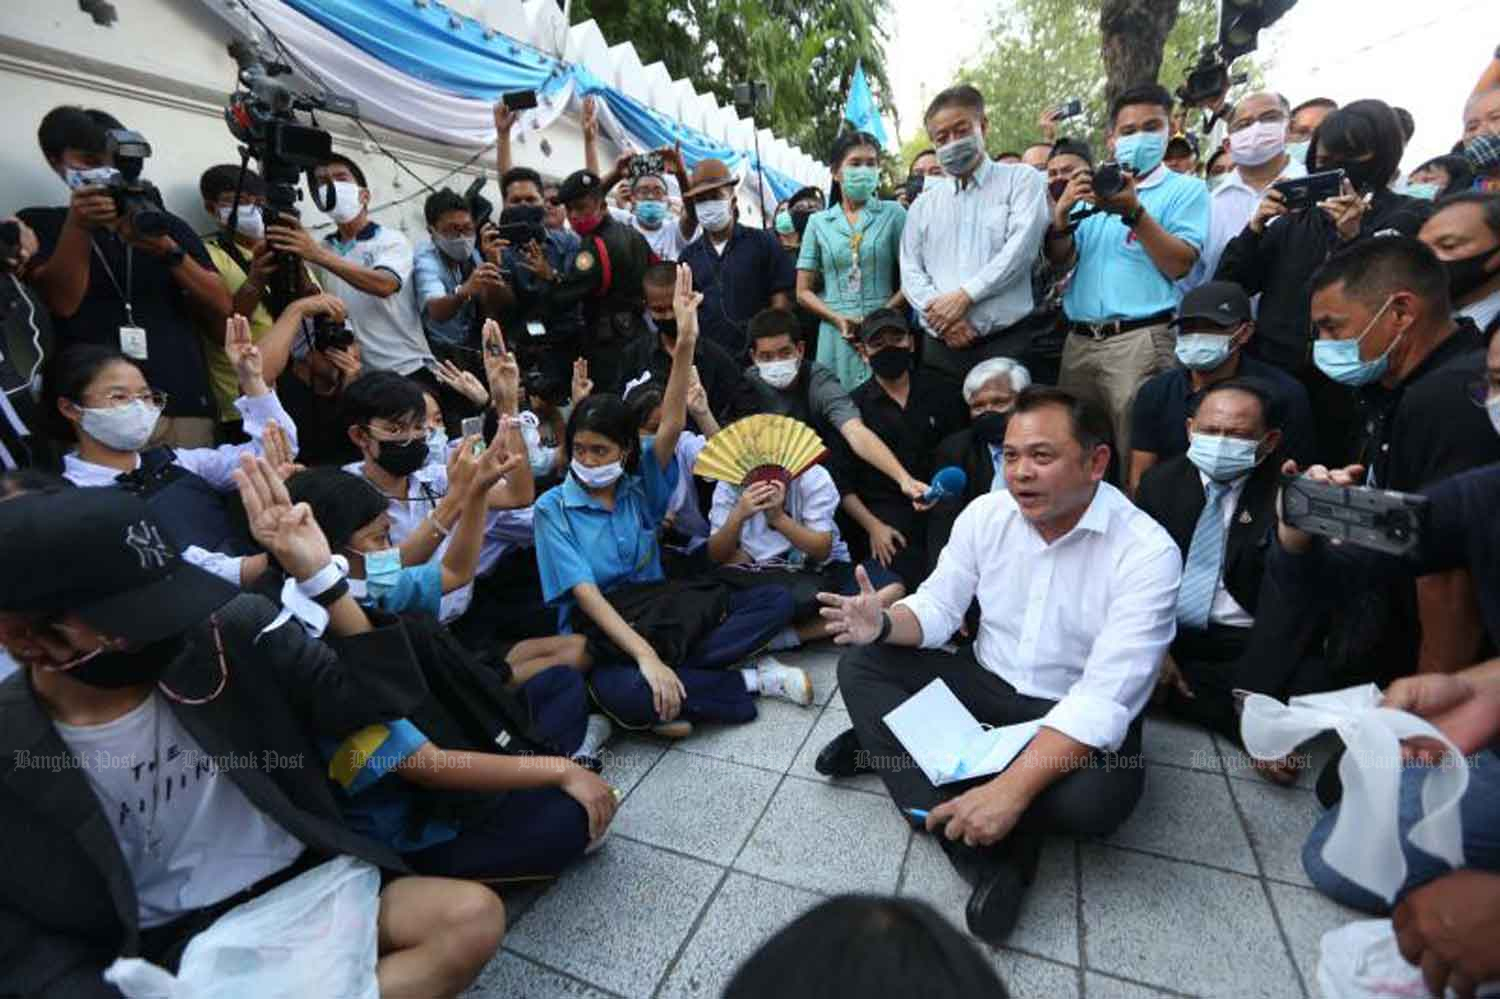 Education Minister Nataphol Teepsuwan on Wednesday sits down in front of his ministry to meet 500 students who called for a new constitution, House dissolution and an end to government harassment. (Photo by Pattarapong Chatpattarasill)